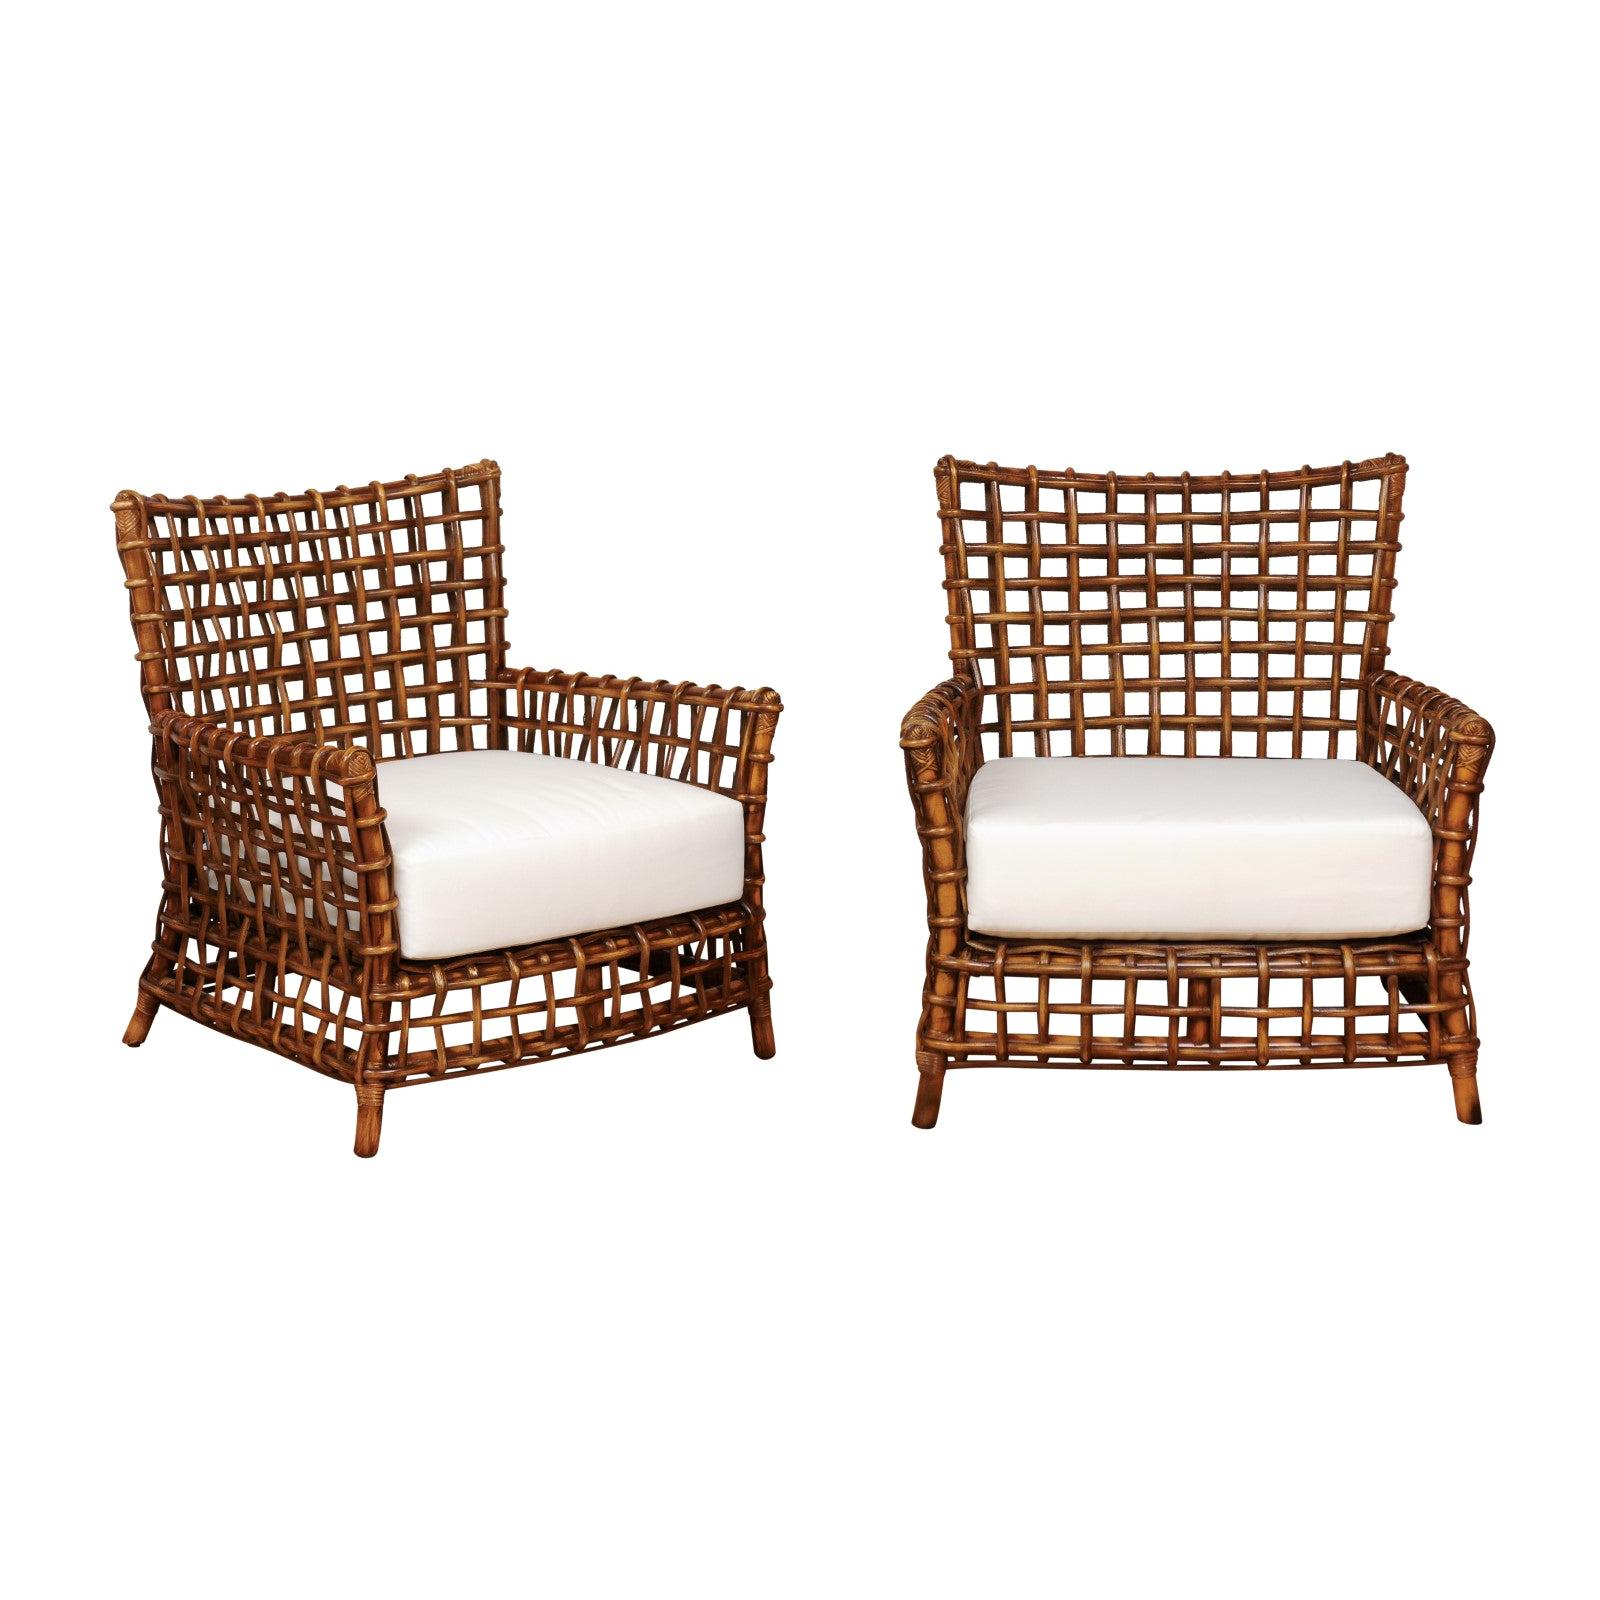 Fabulous Pair of Caramel Rattan and Cane Club Chairs by McGuire, circa 1980